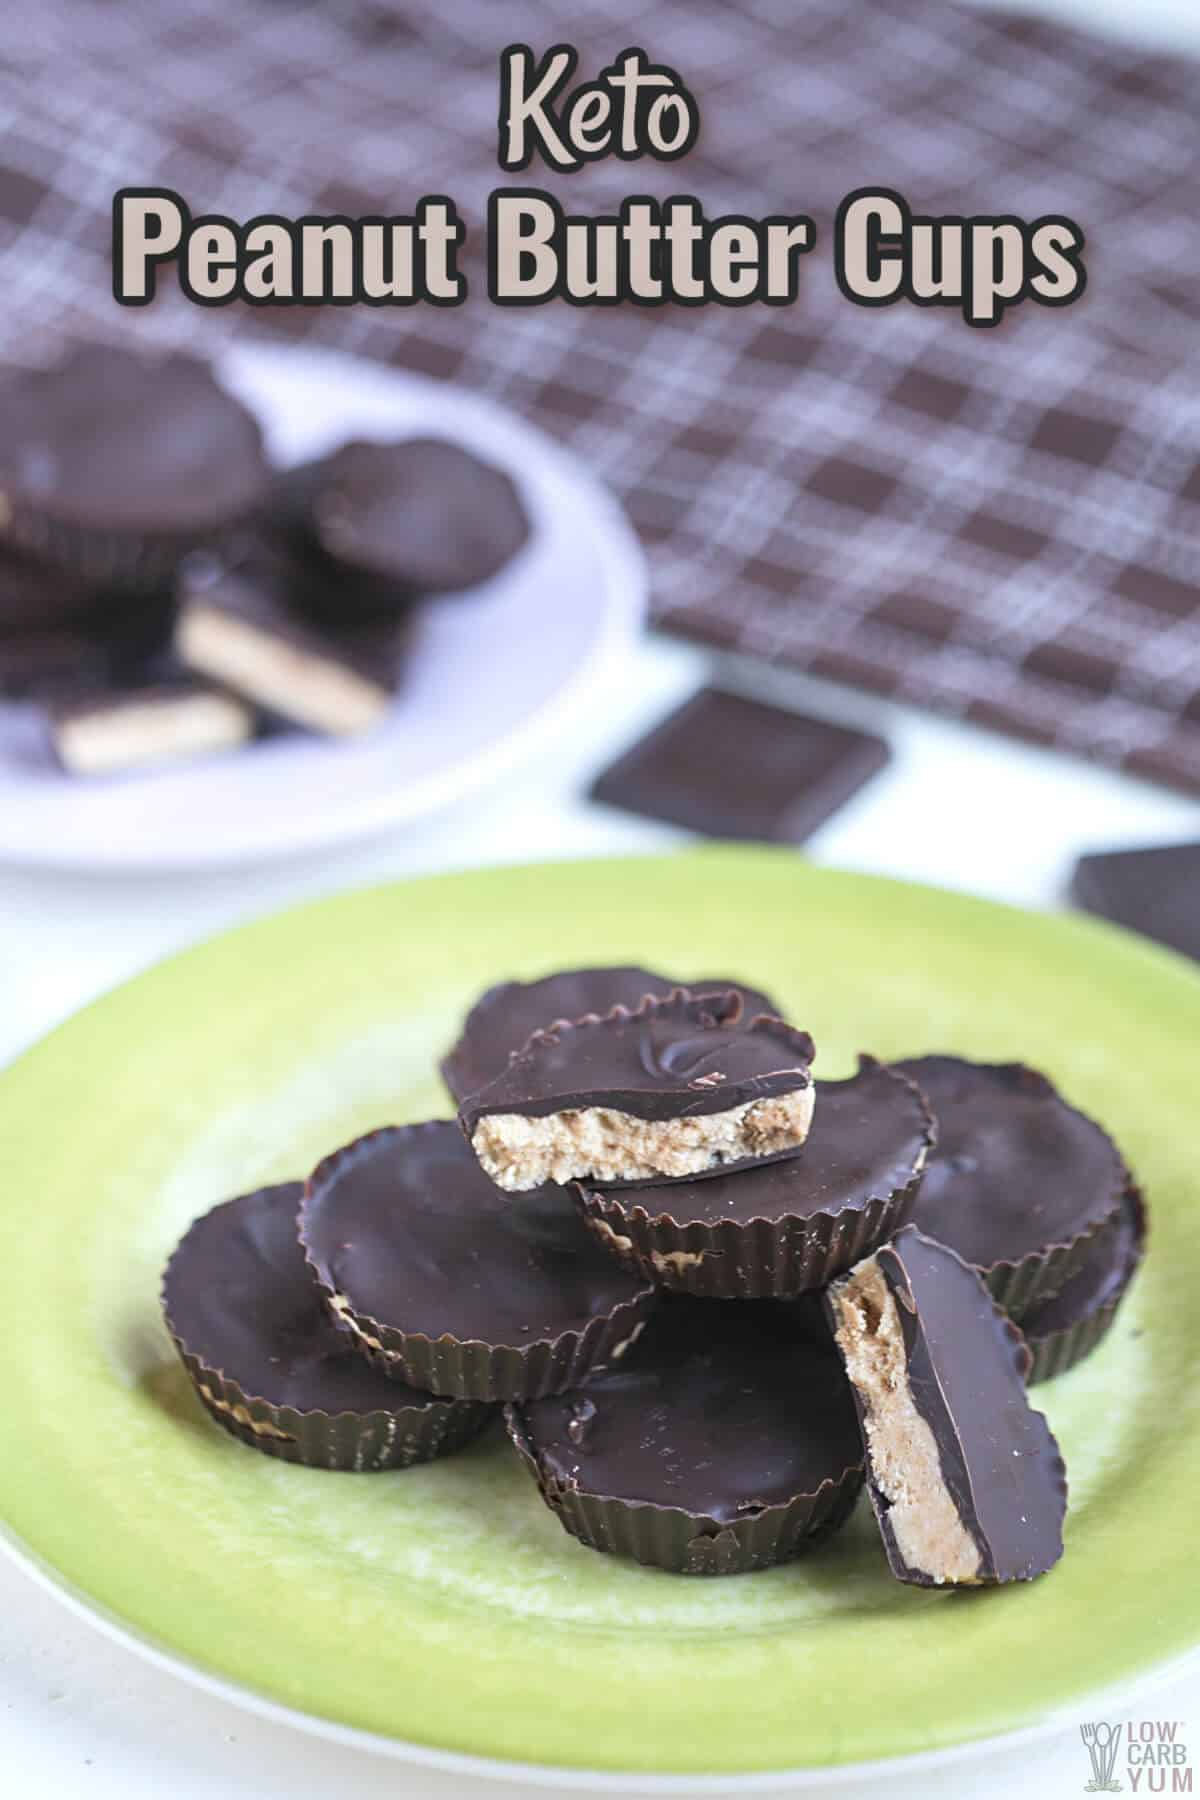 keto peanut butter cups cover image